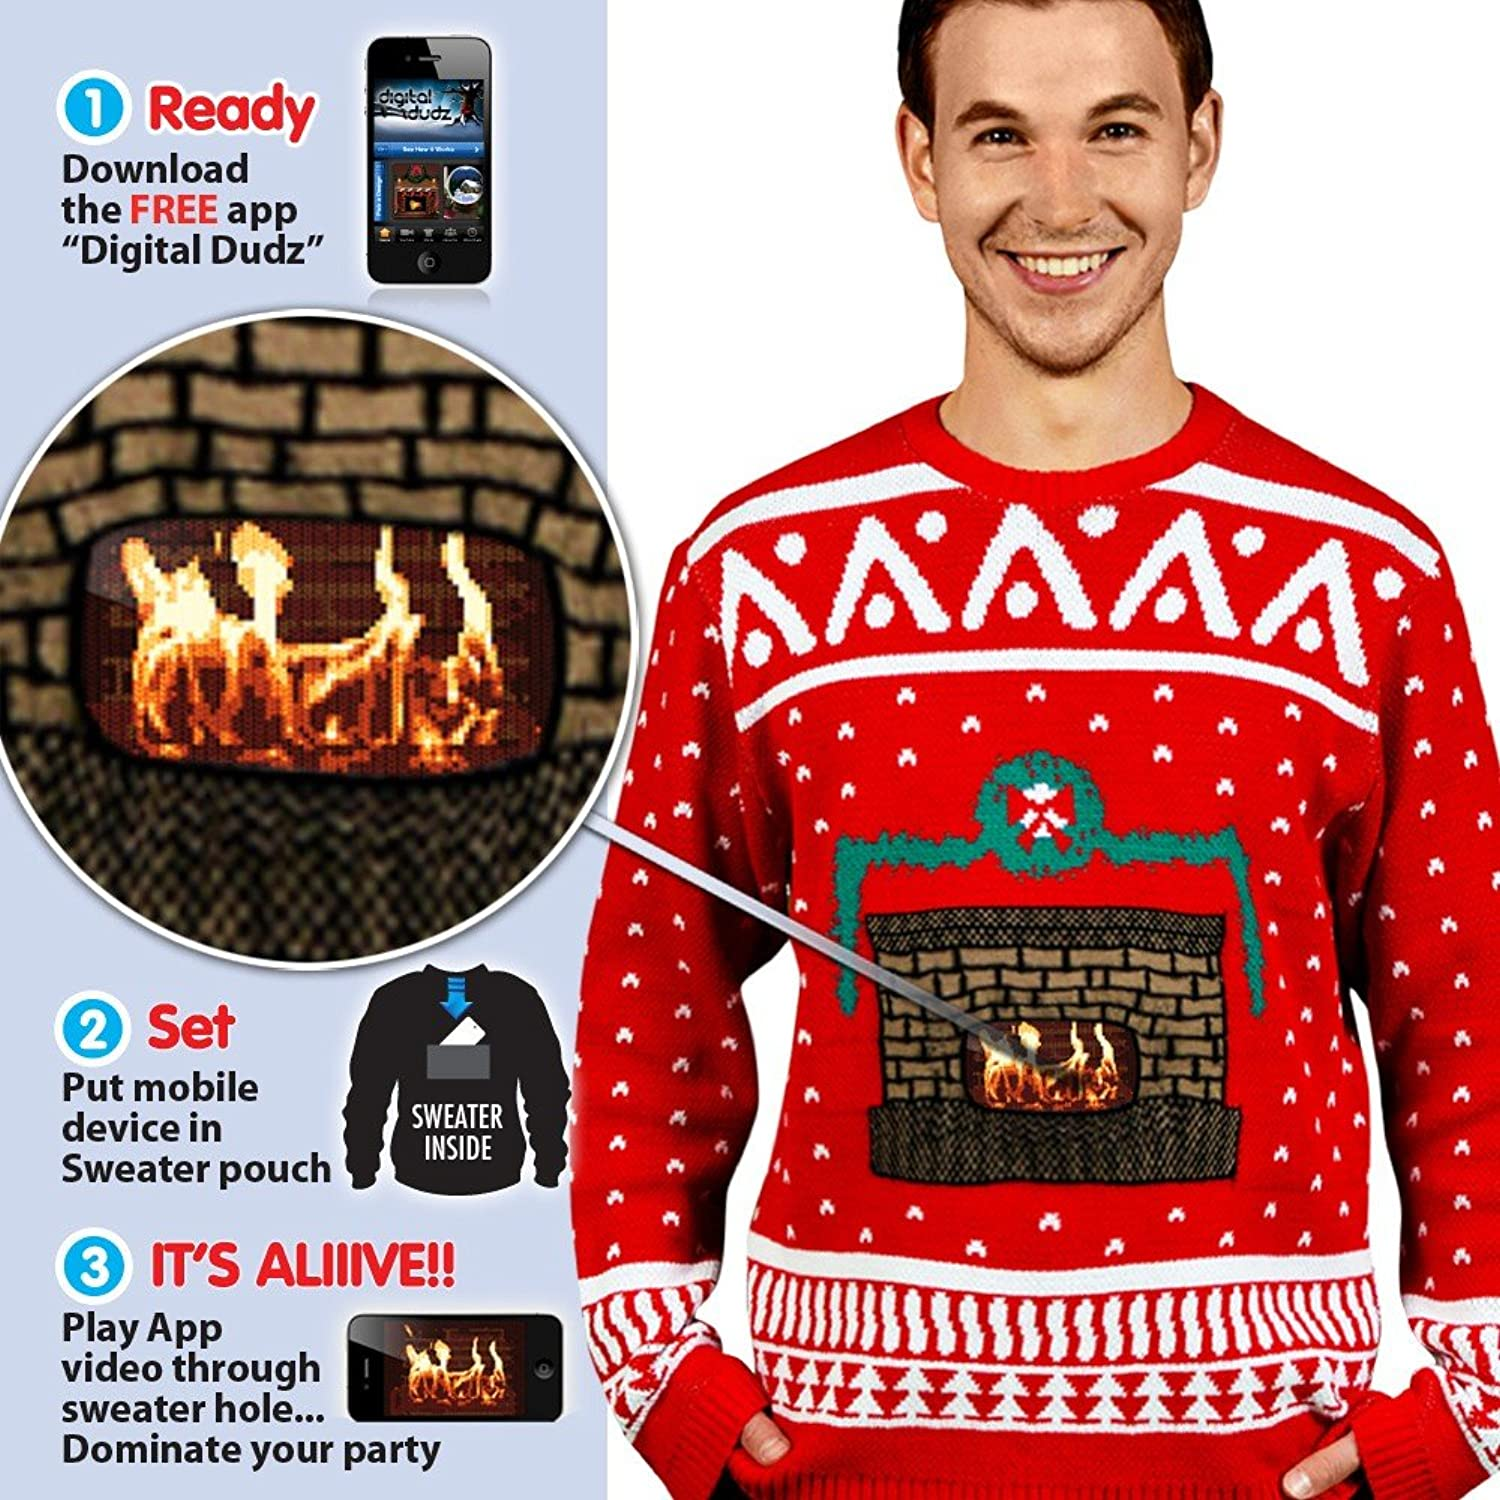 Buy Digital Dudz Crackling Fireplace Digital Christmas Sweater and other Pullovers at Amazon.com. Our wide selection is elegible for free shipping and free returns.